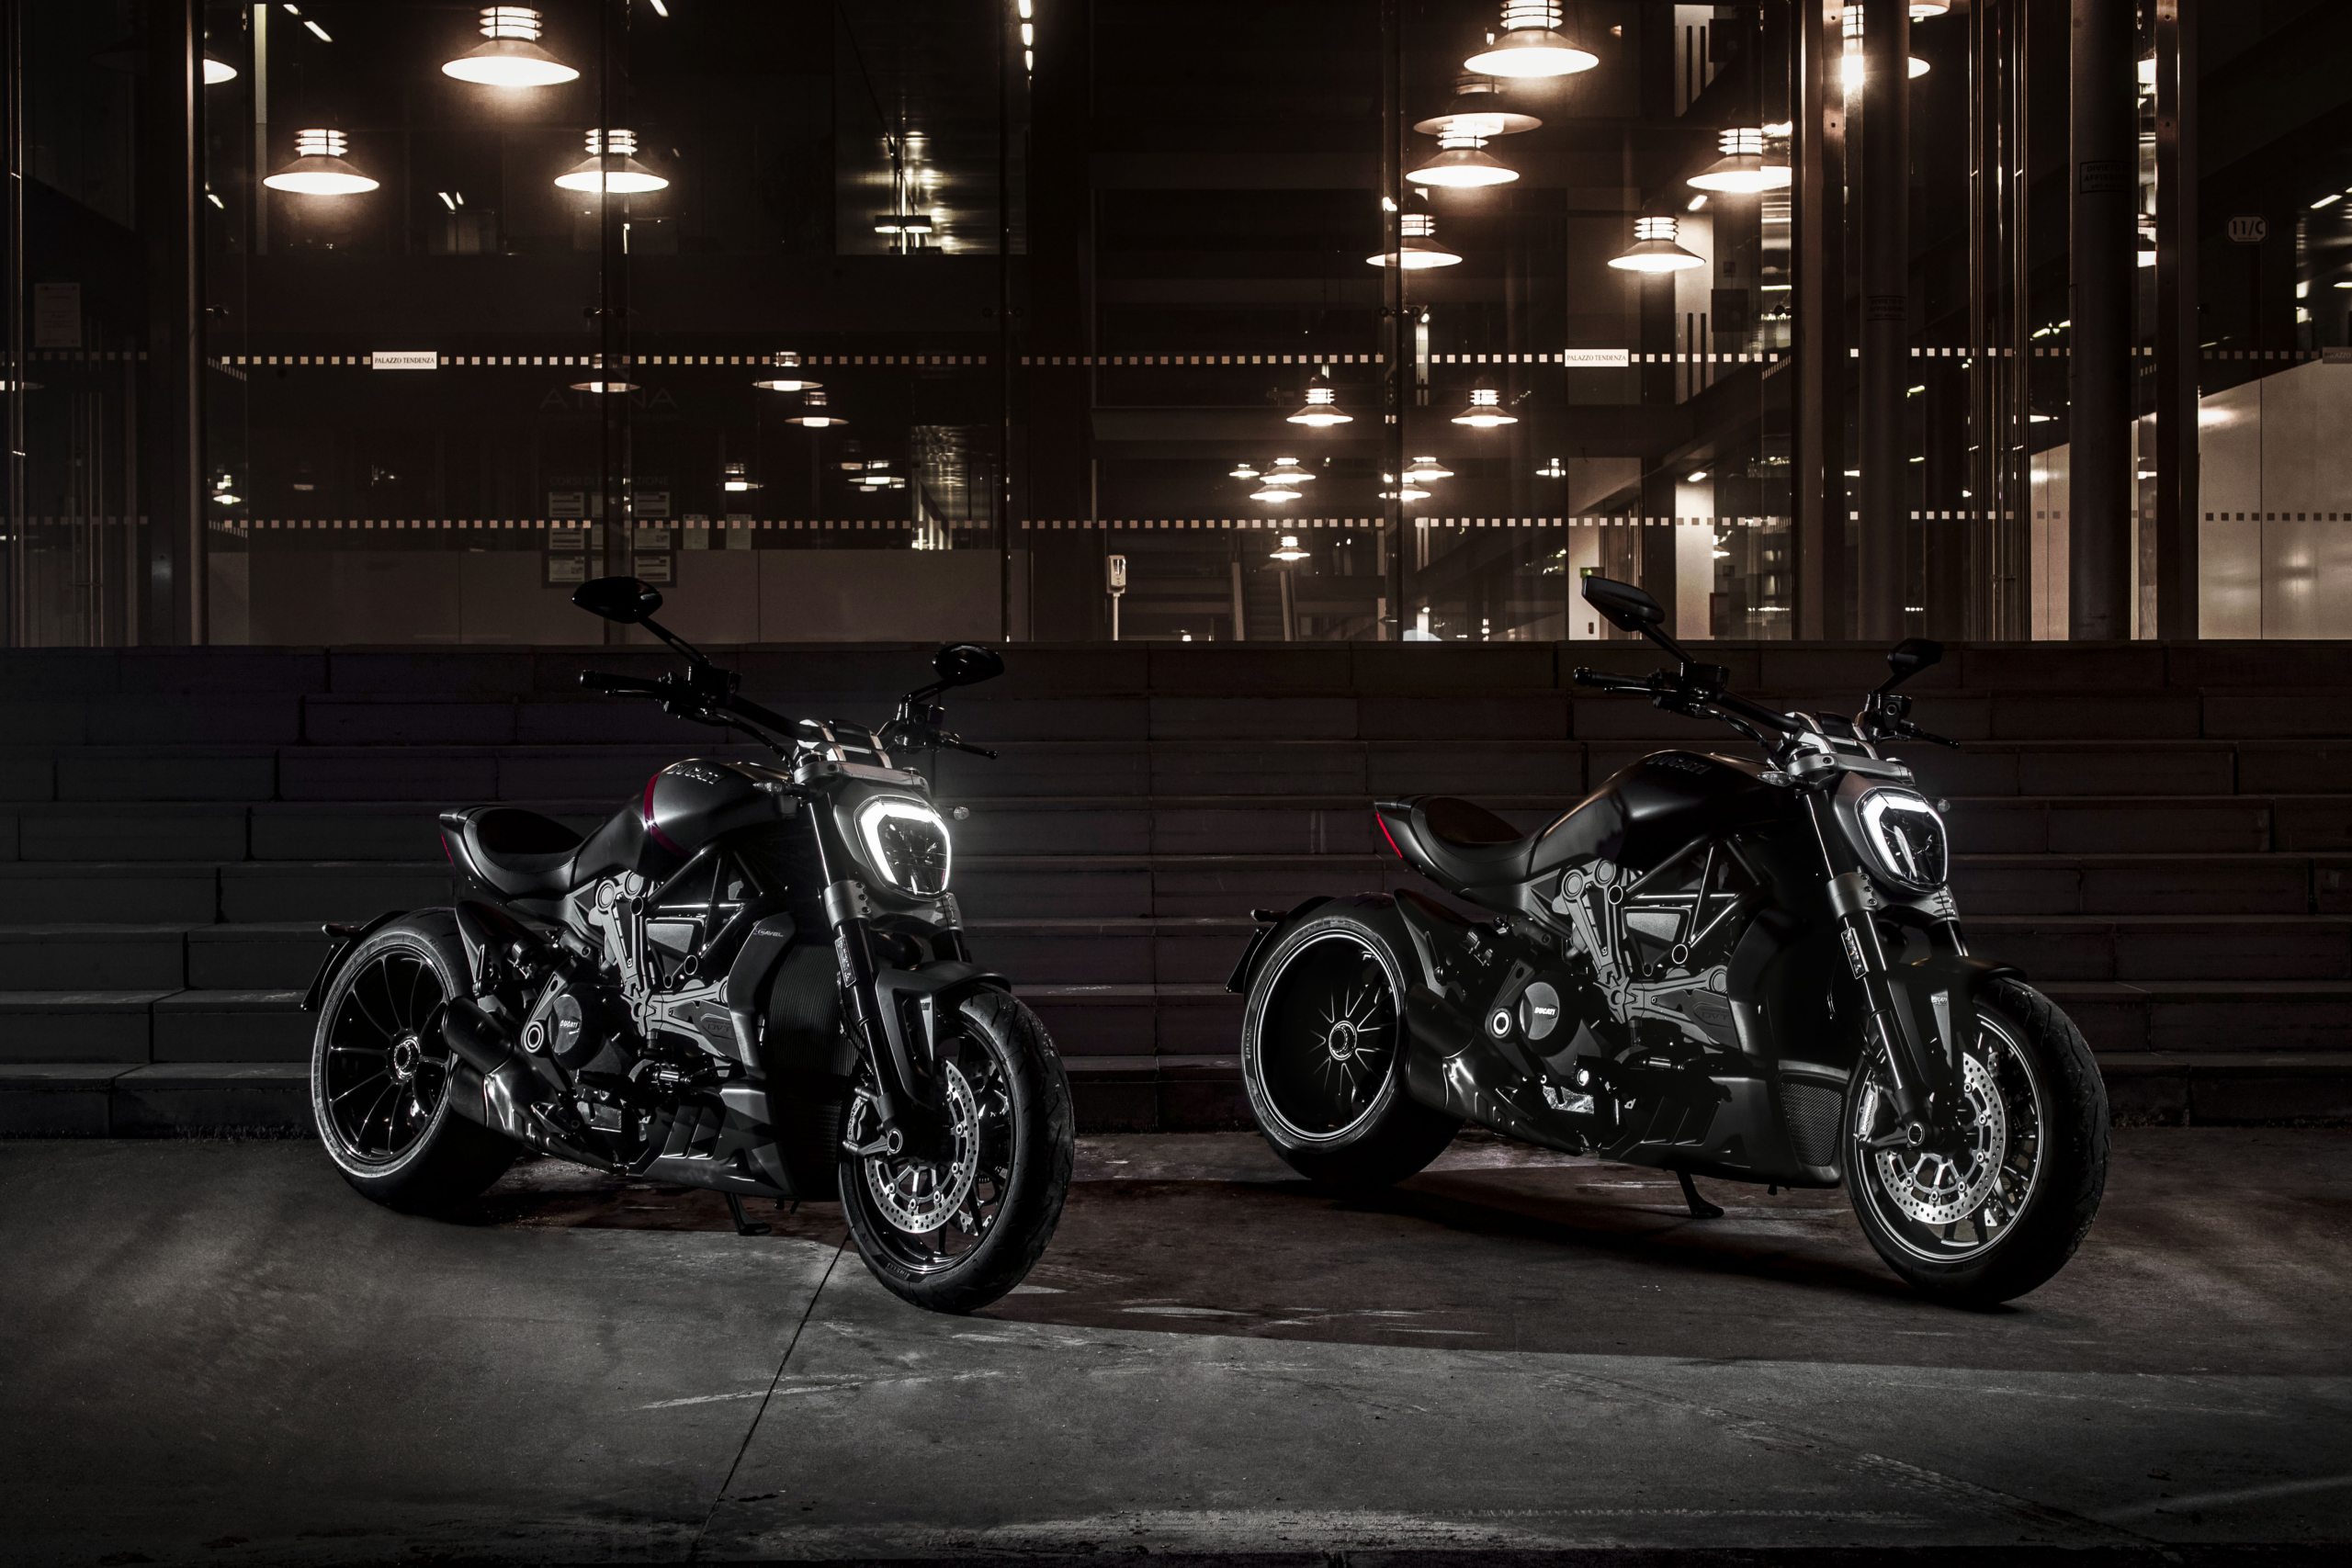 XDiavel Black Star and XDiavel Dark